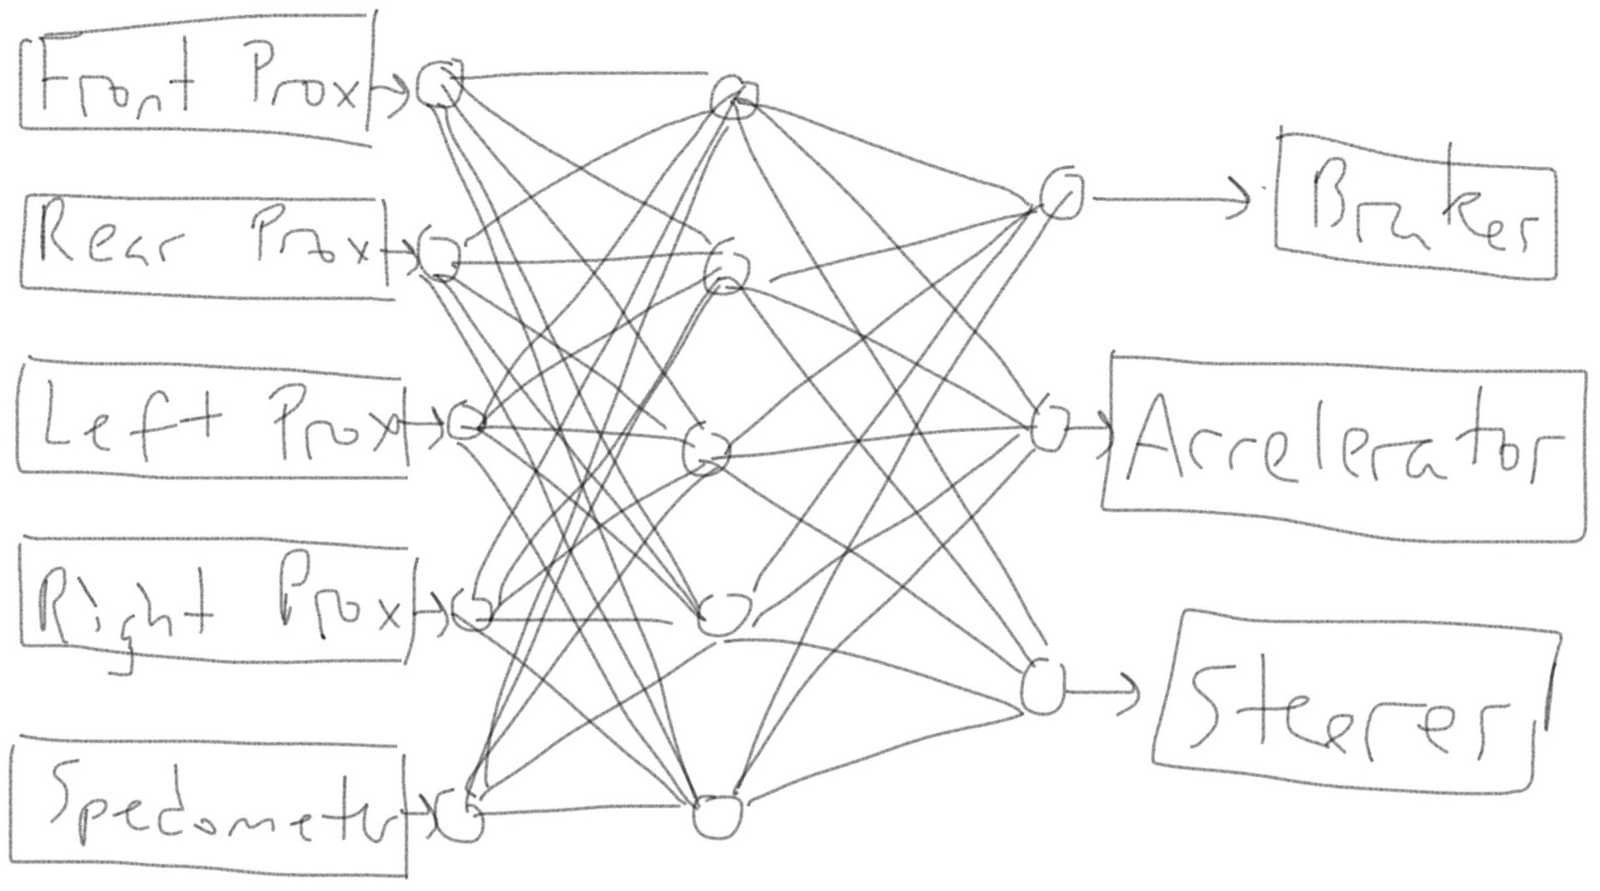 Introduction To Neural Nets Without The Brain Metaphor Signal Stat 700 Wiring Diagram In This Case You Add More Wires Arranged Layers Intermediate Nodes Aggregate Electrical Signals And Combine Them Before Passing